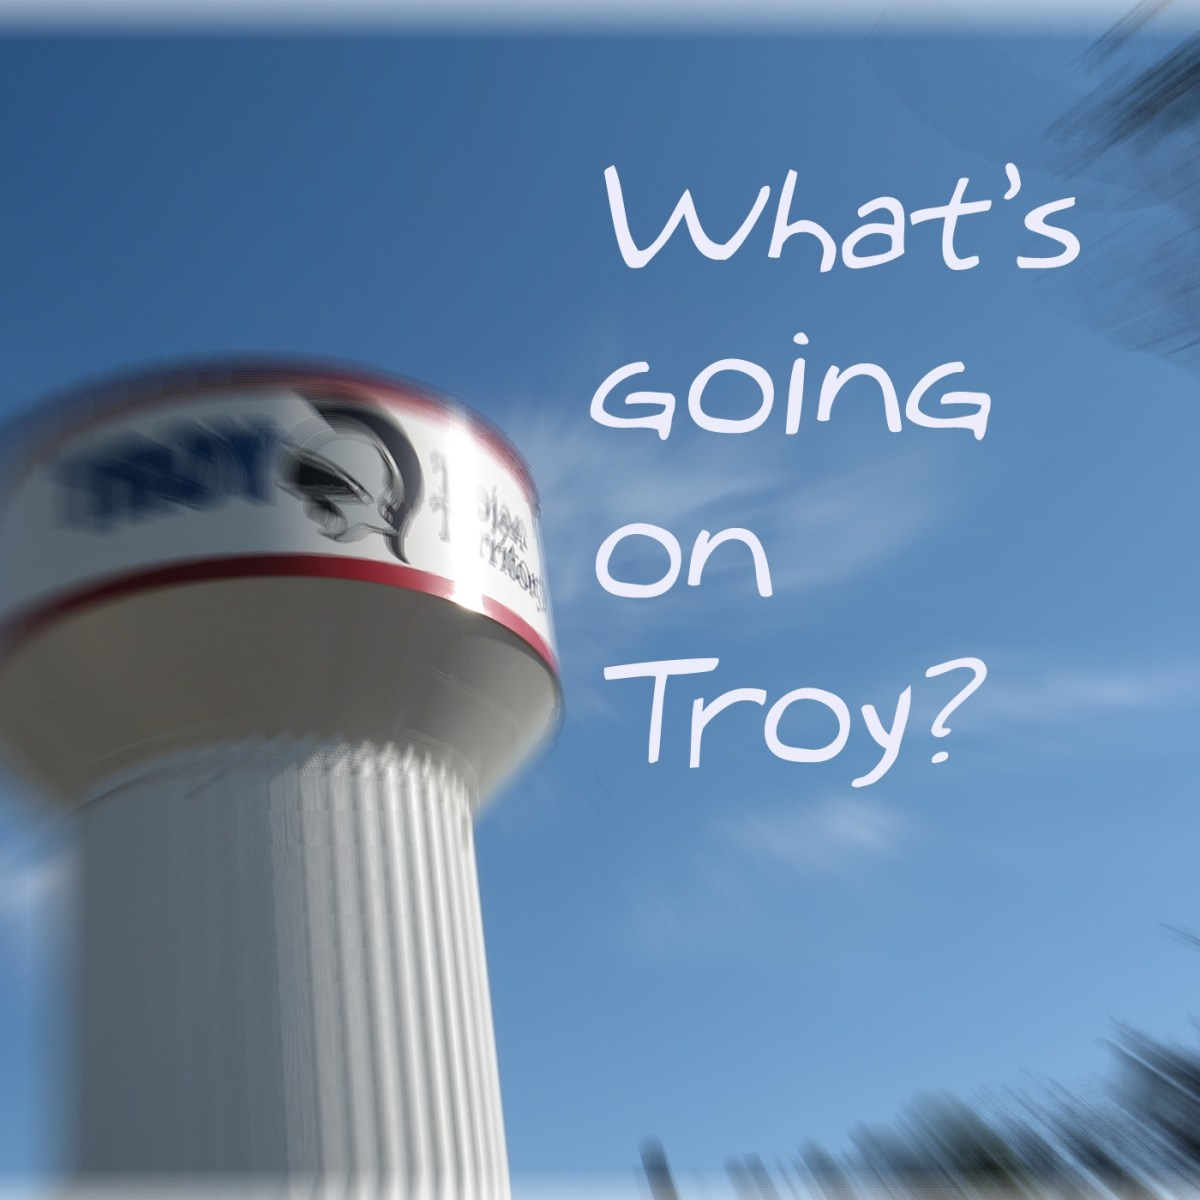 What's Going On Troy?